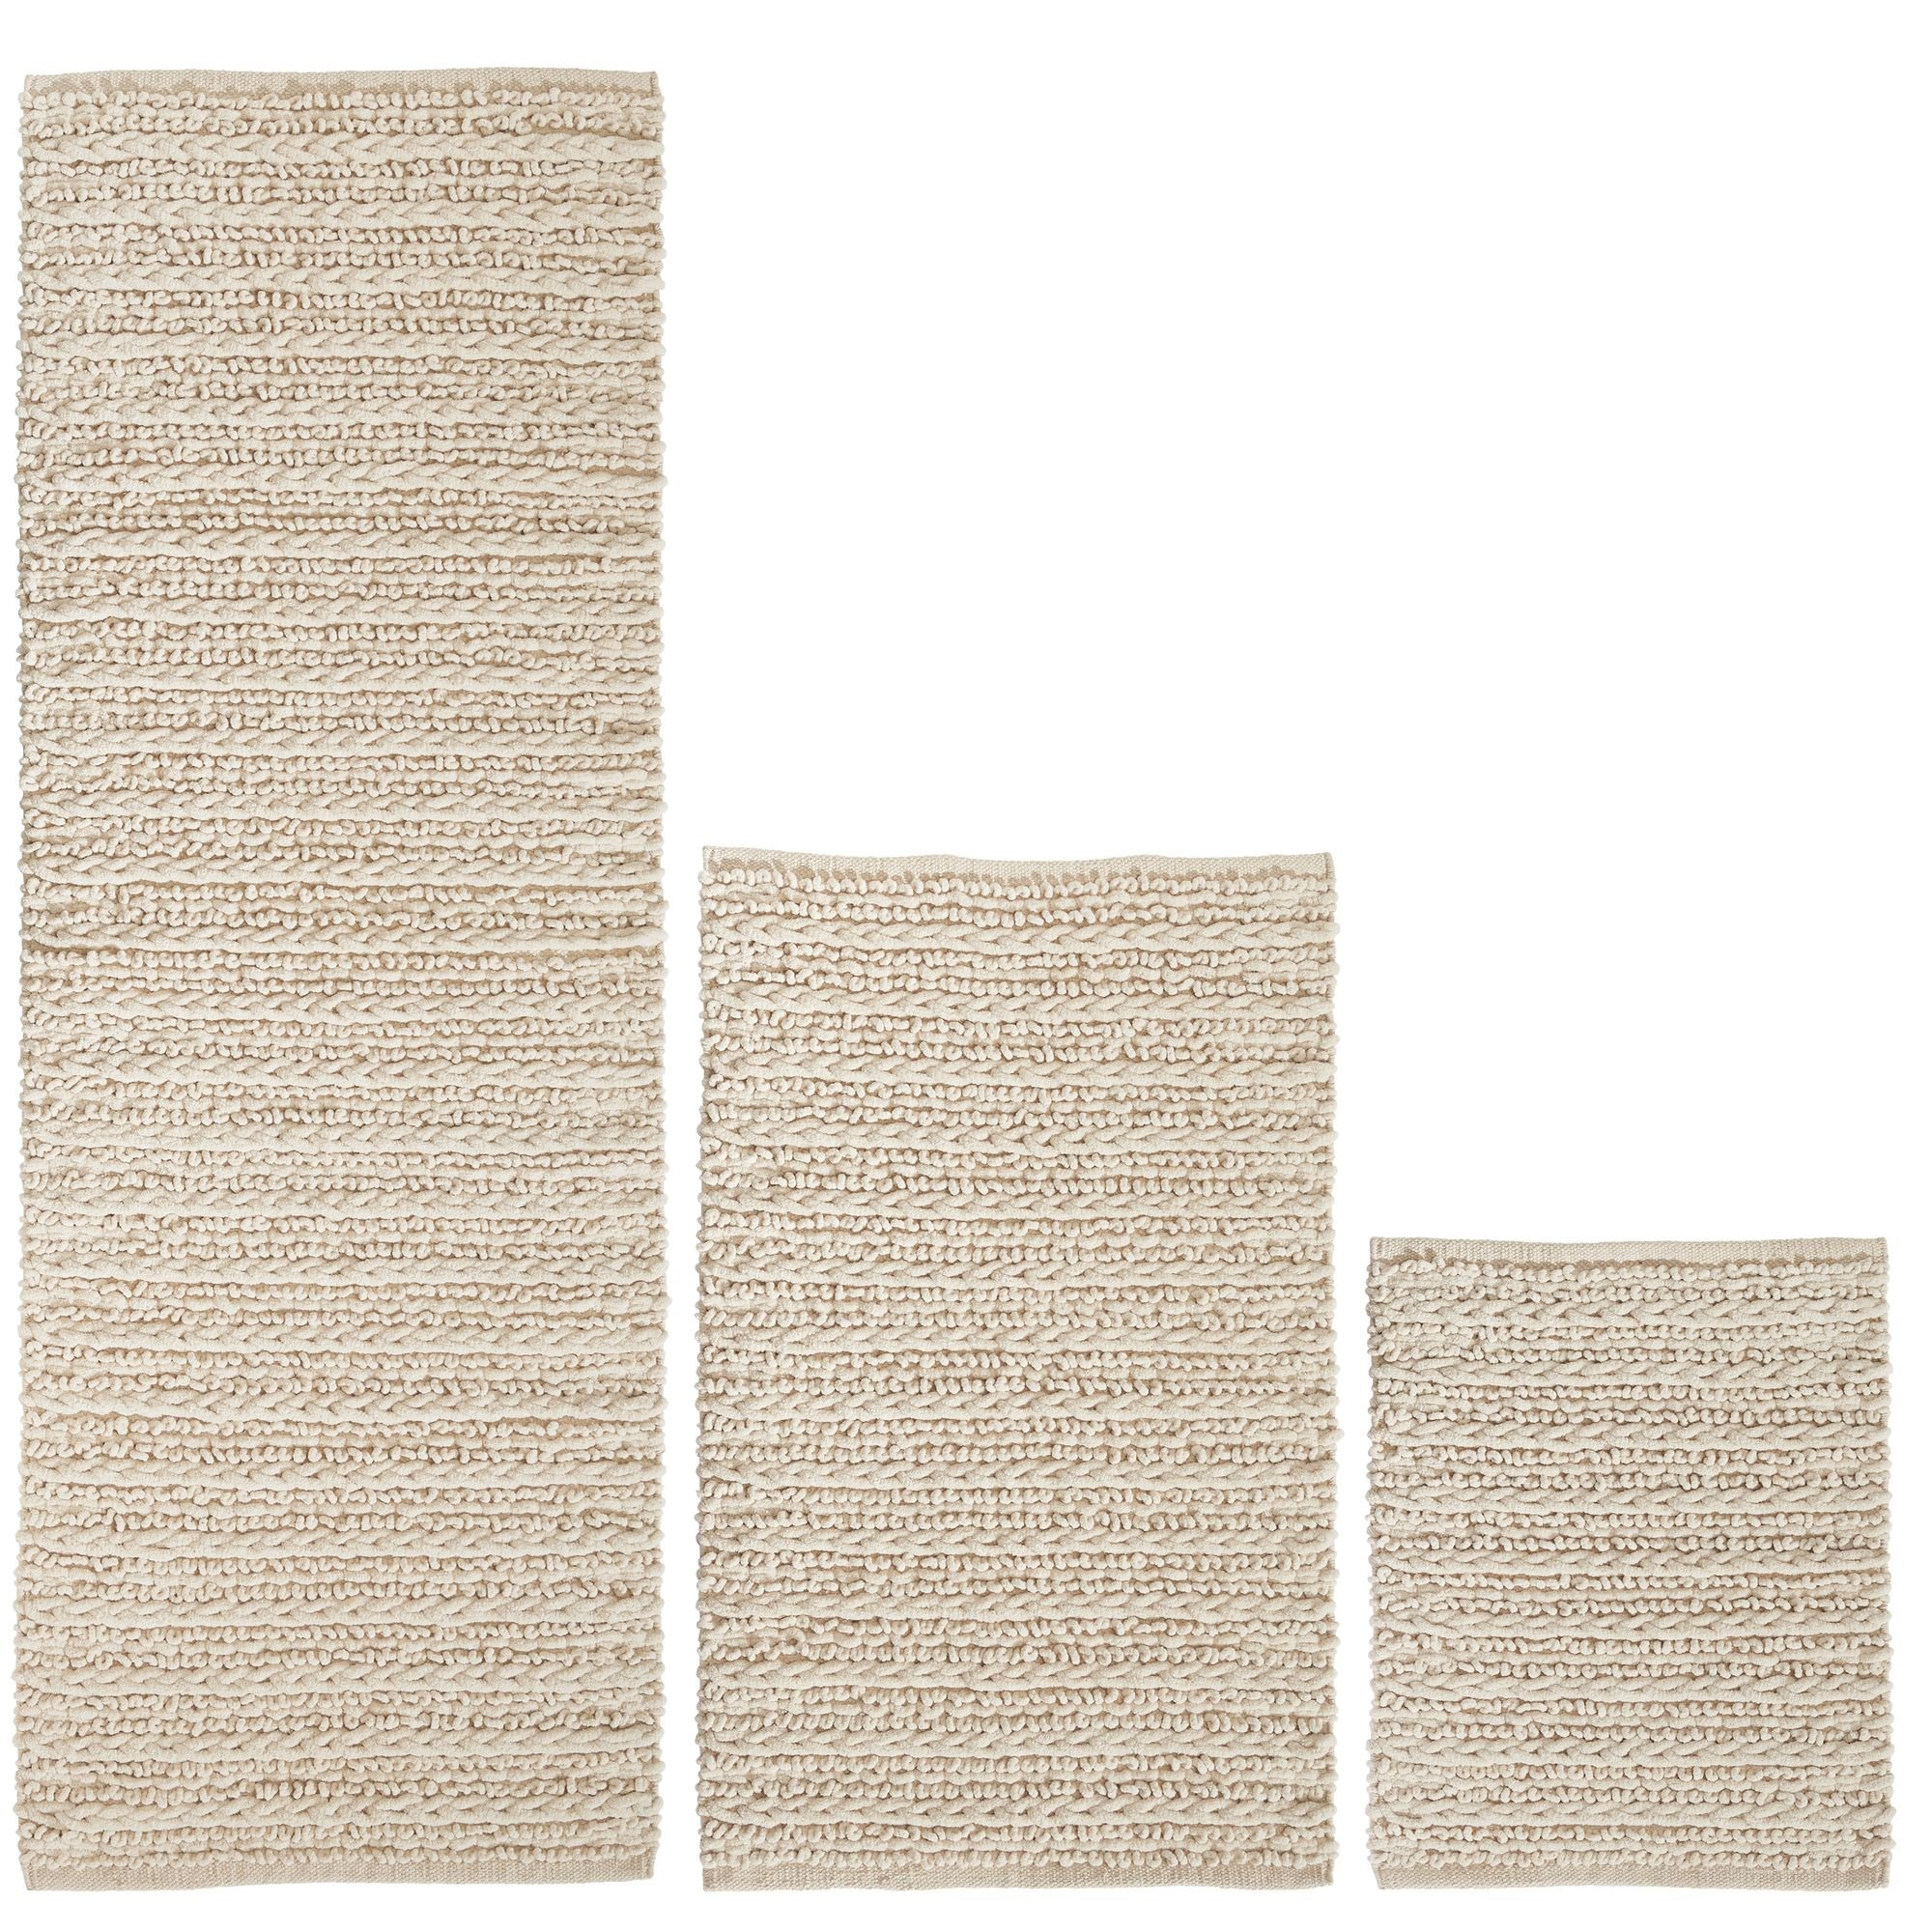 mDesign 100% Cotton Luxury Rectangular Spa Mat Rugs, Plush Water Absorbent, Braided Design- for Bathroom Vanity, Bathtub/Shower, Machine Washable - Runner, Standard & Small Rug - Pack of 3, Natural